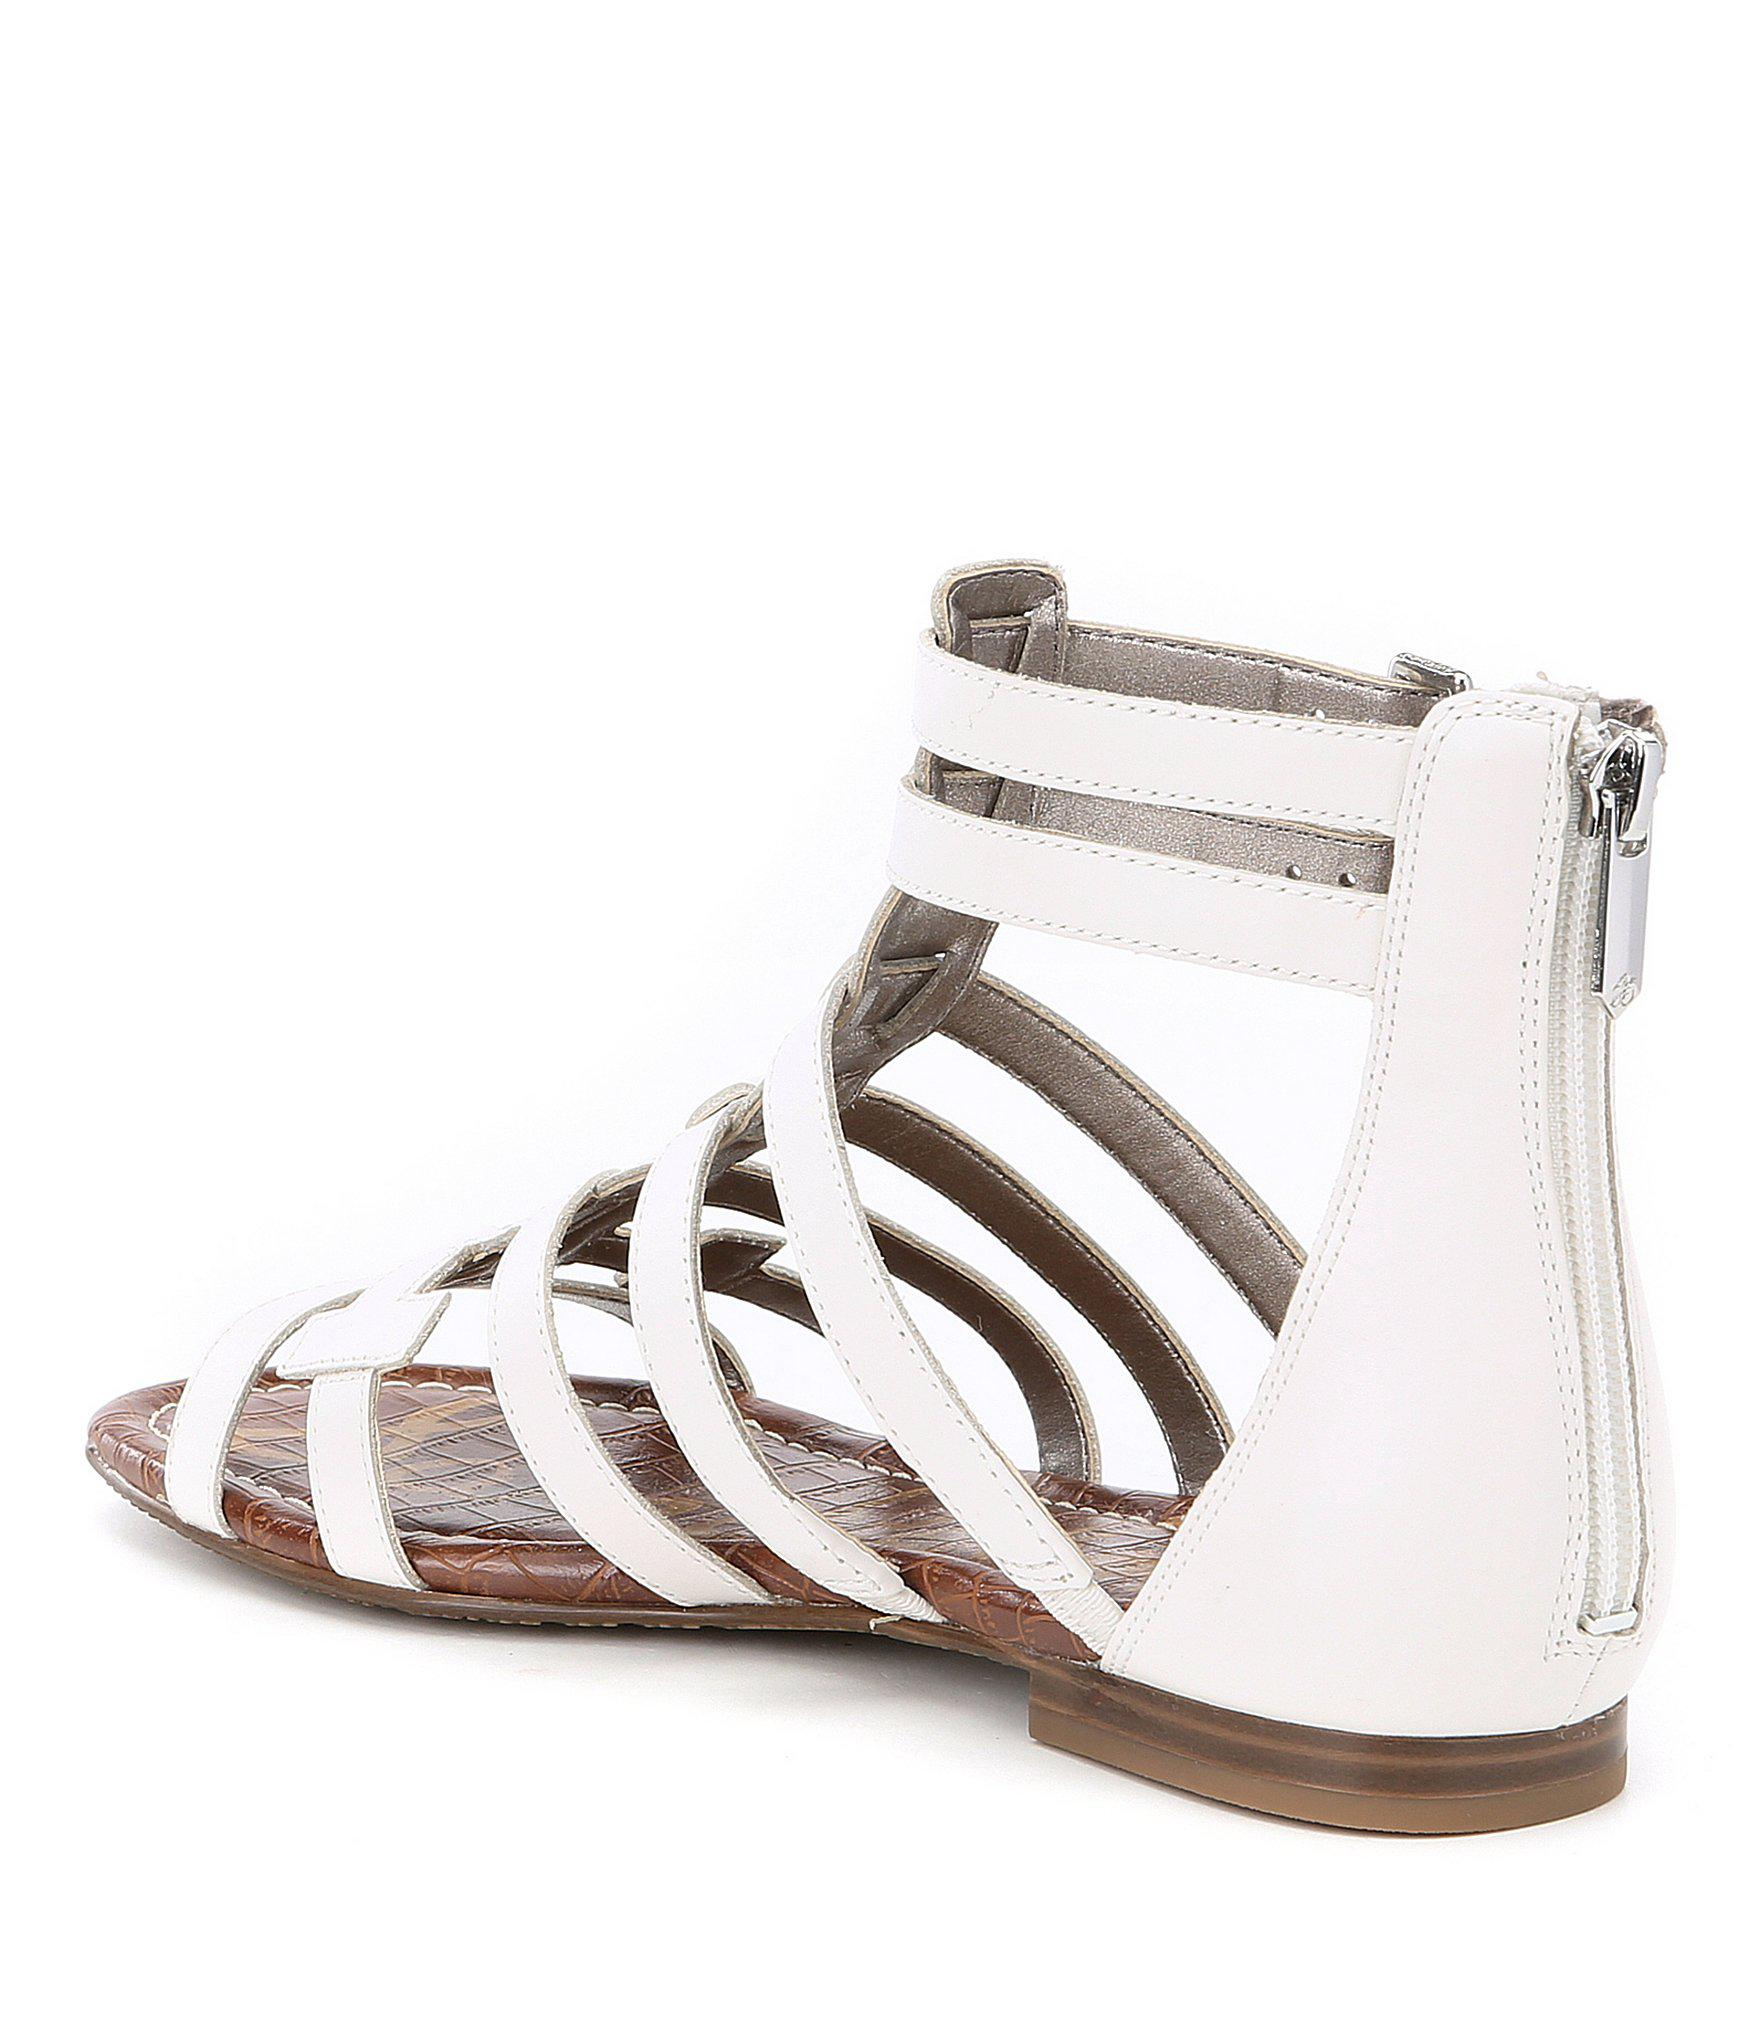 690a8b85d5cd Gallery. Previously sold at  Dillard s · Women s Cage Sandals Women s  Gladiator ...